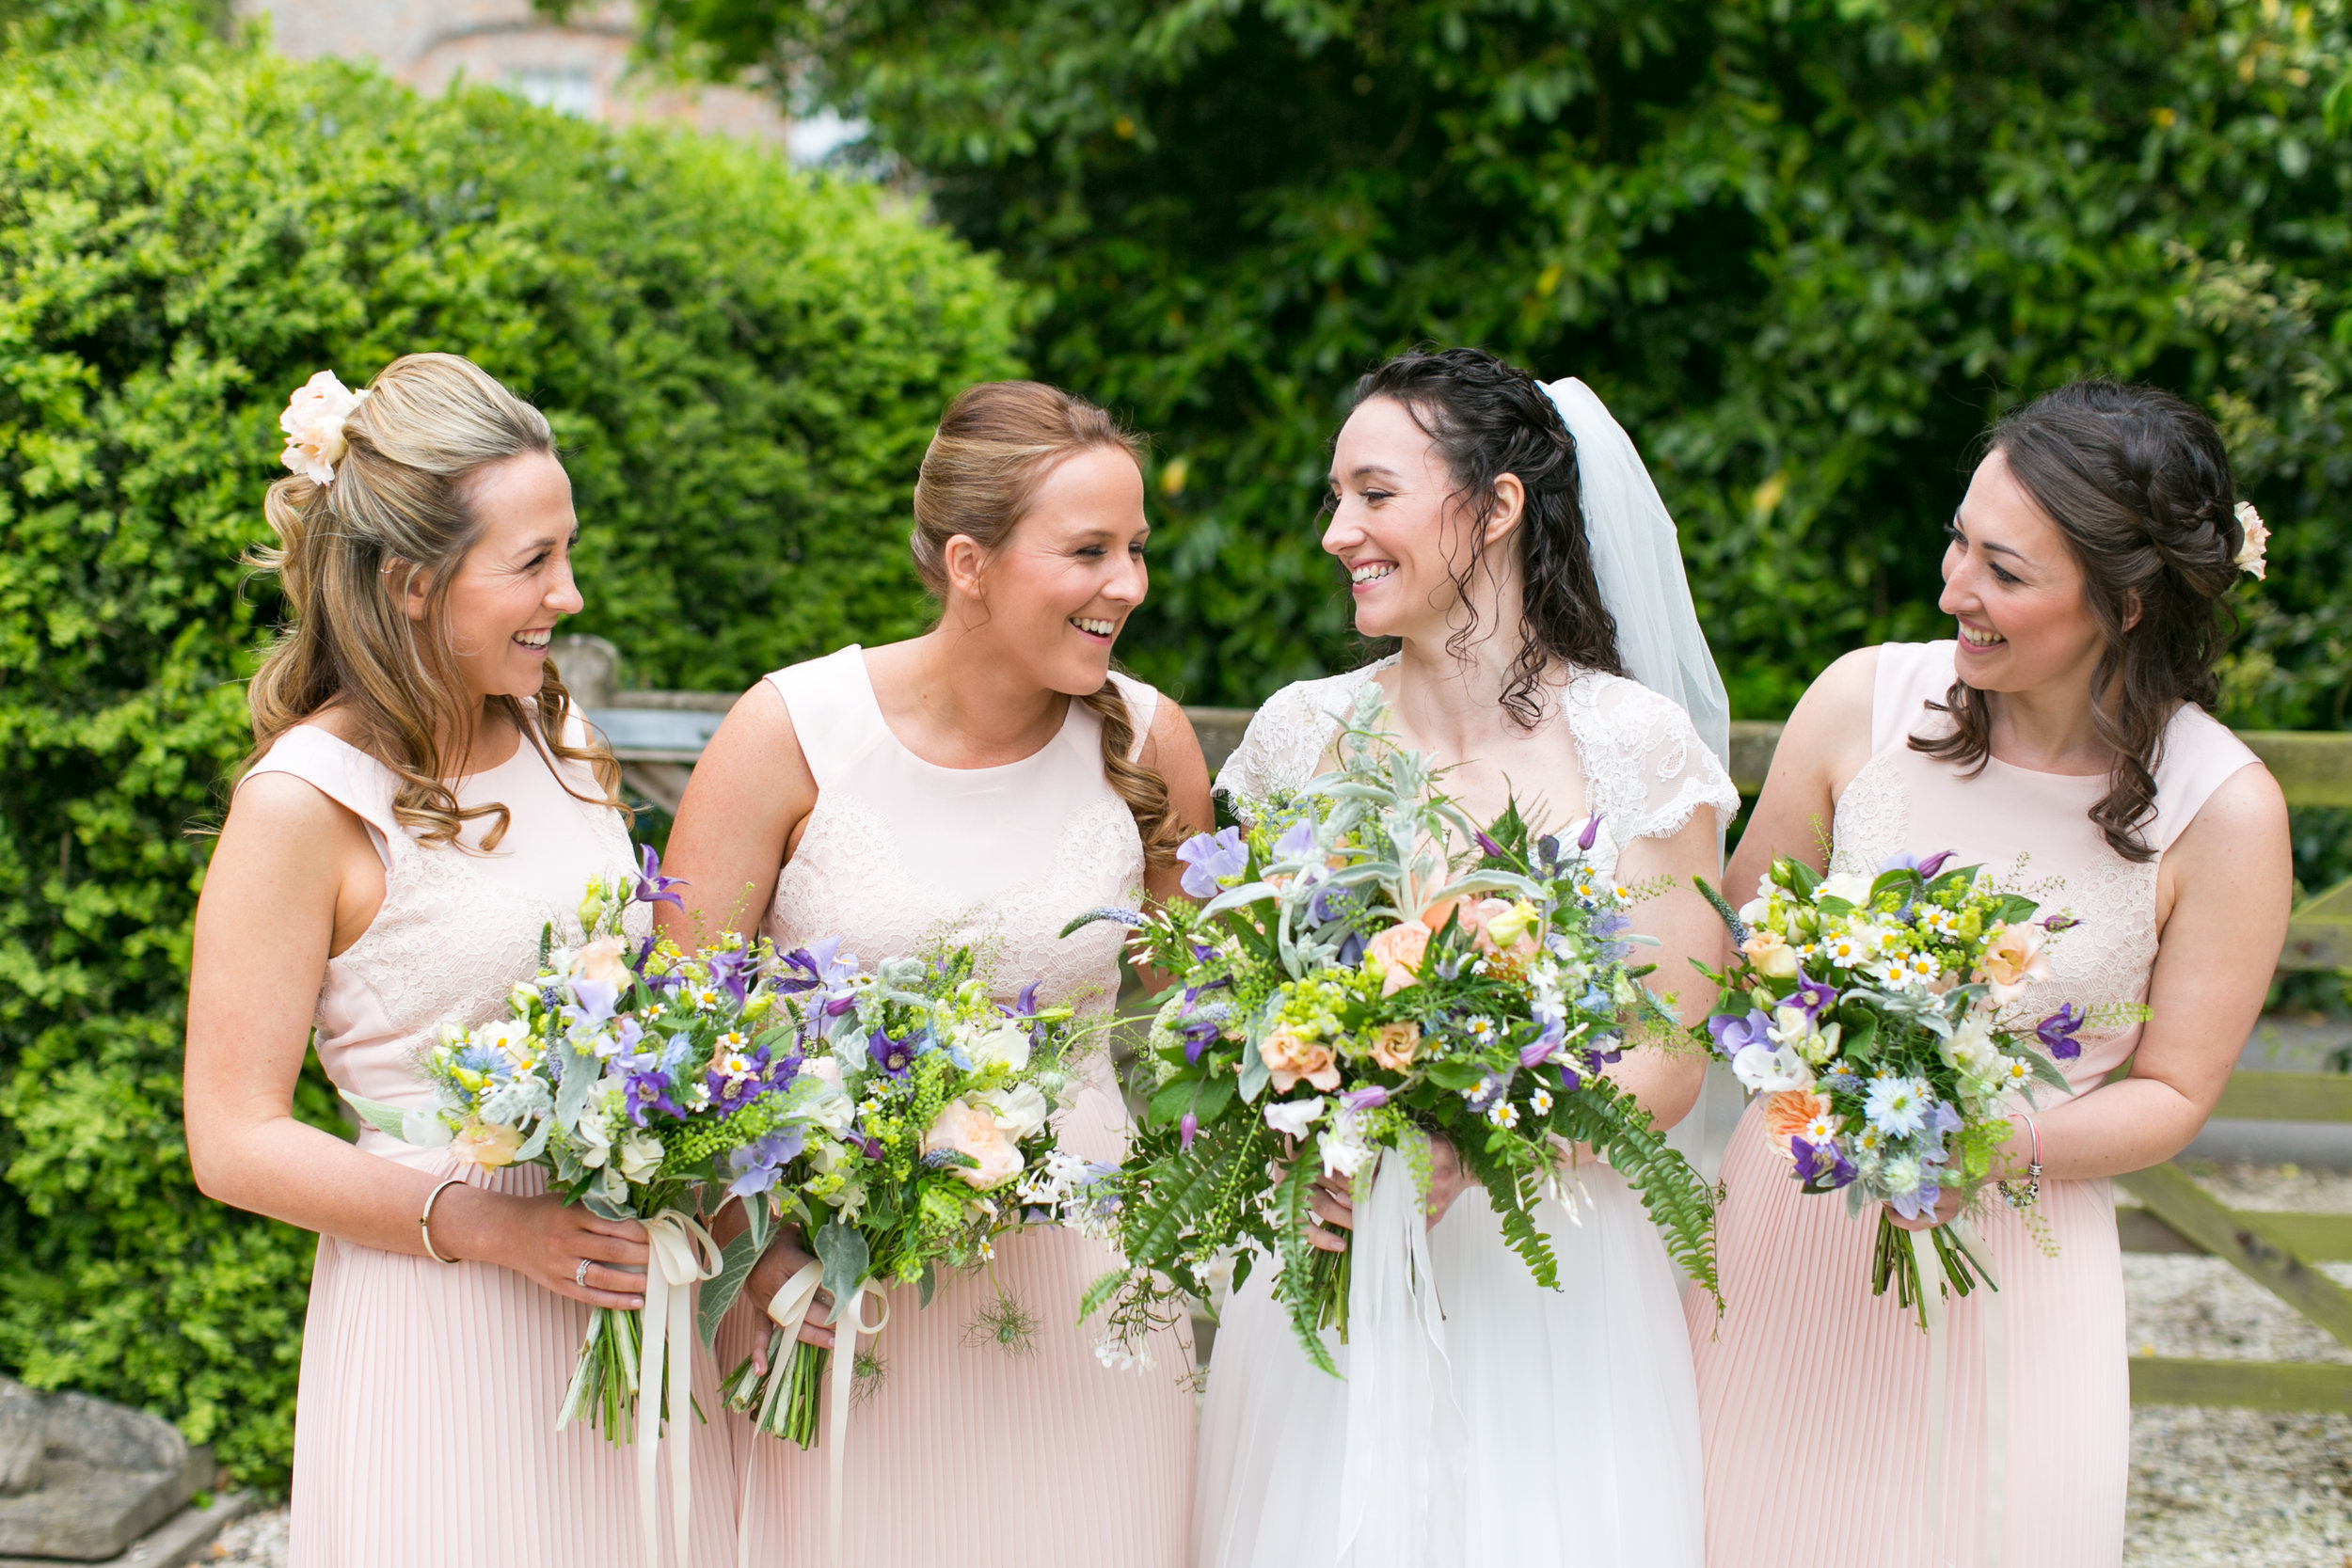 Kerri and her maids. I often have a colour swatch or a small photograph from which to work with to help pull together a collection of flowers to colour co-ordinate with the maids dress fabric. When I arrive on the morning of a wedding to deliver the bouquets, I am often eager to check my co-ordination skills have been successful! I was pretty chuffed with these flowers!